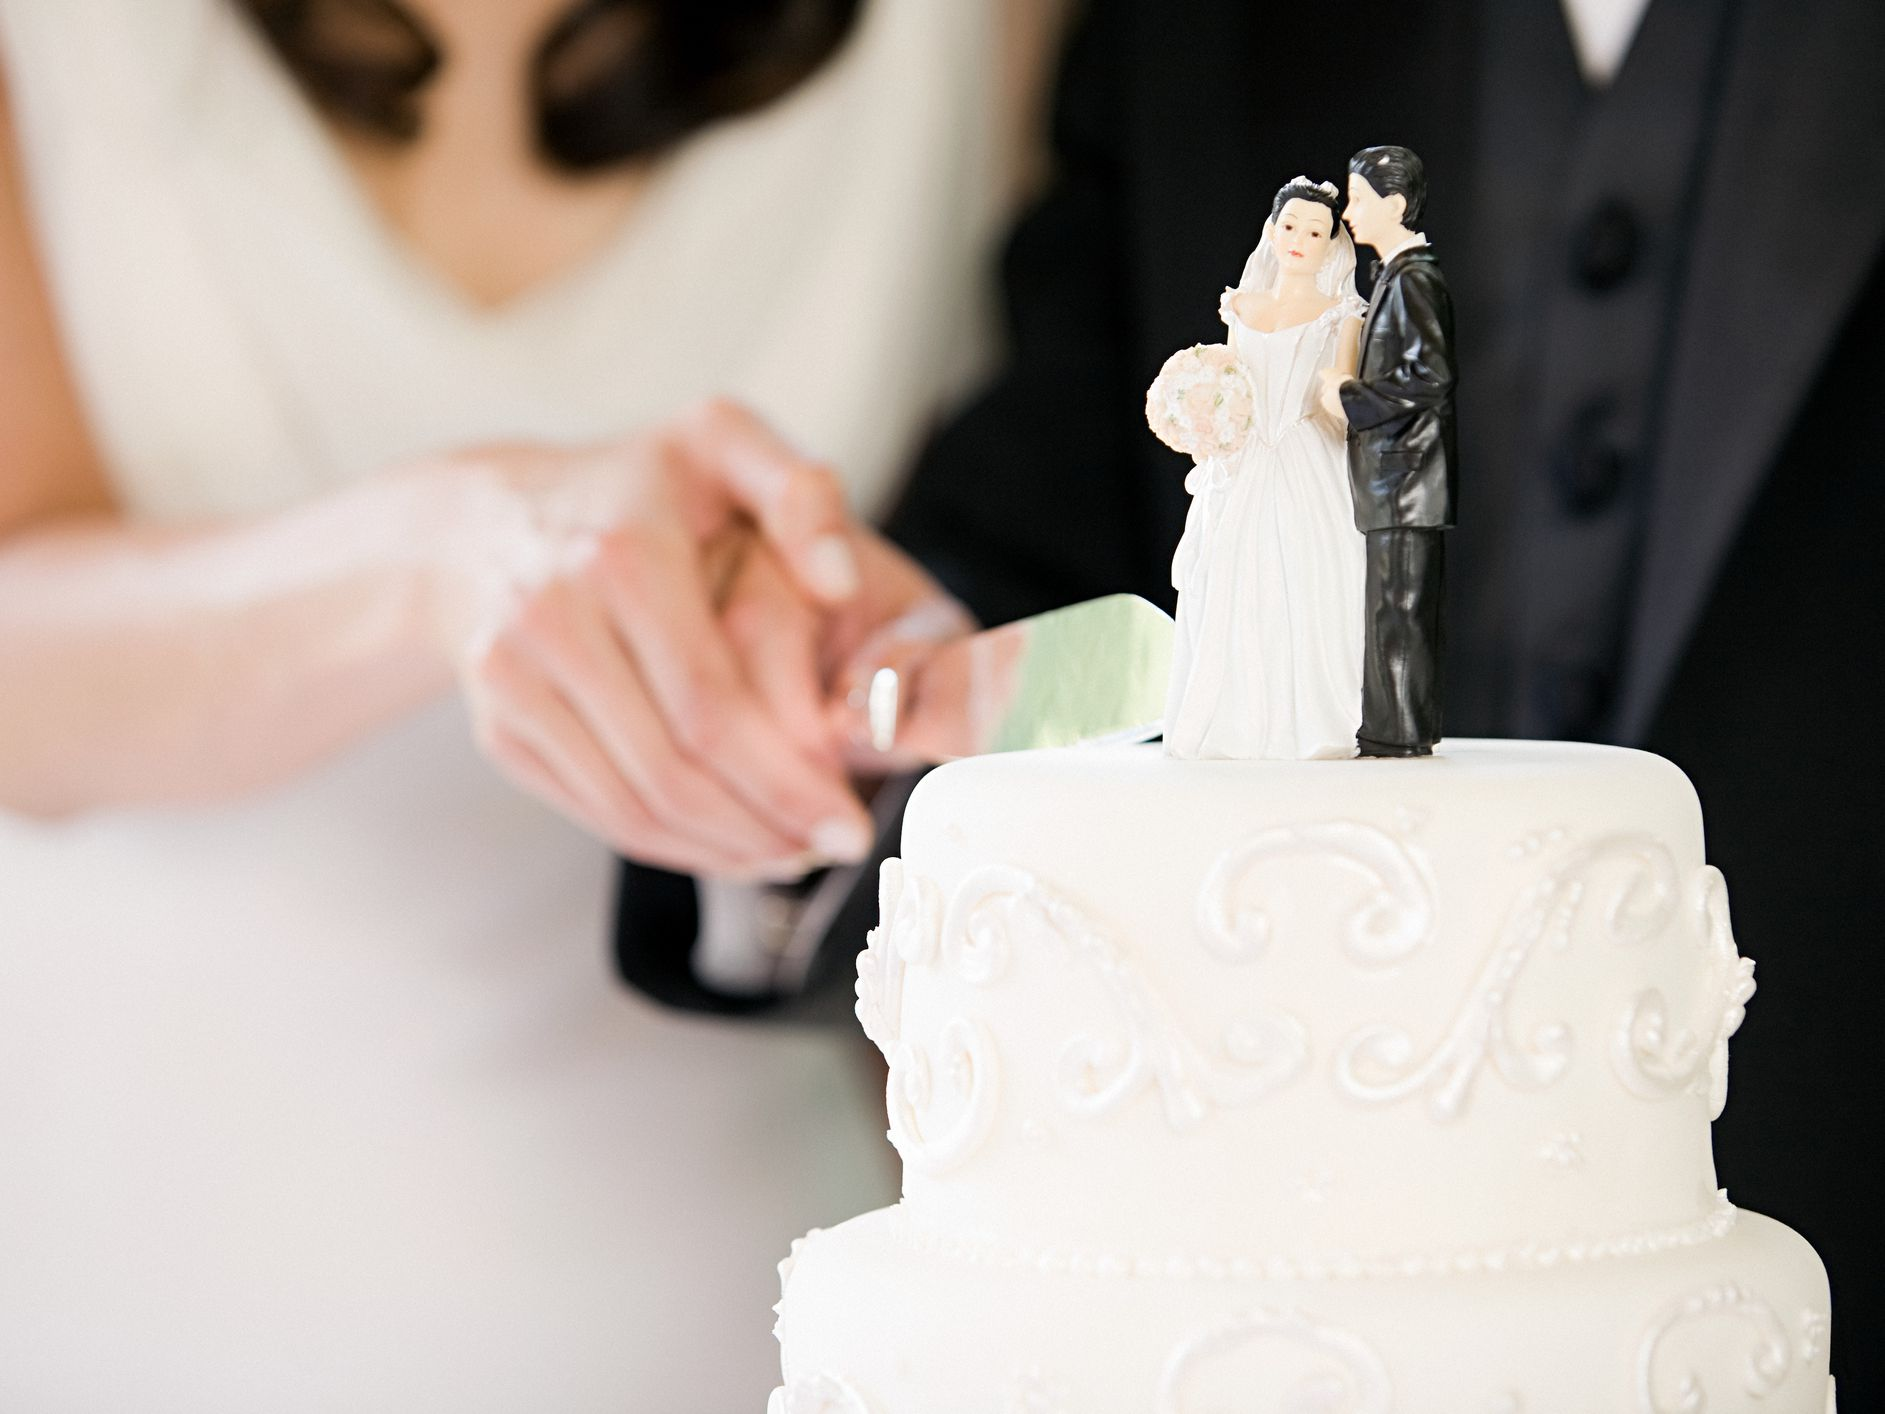 Christian Wedding Symbols The Meaning Behind The Traditions